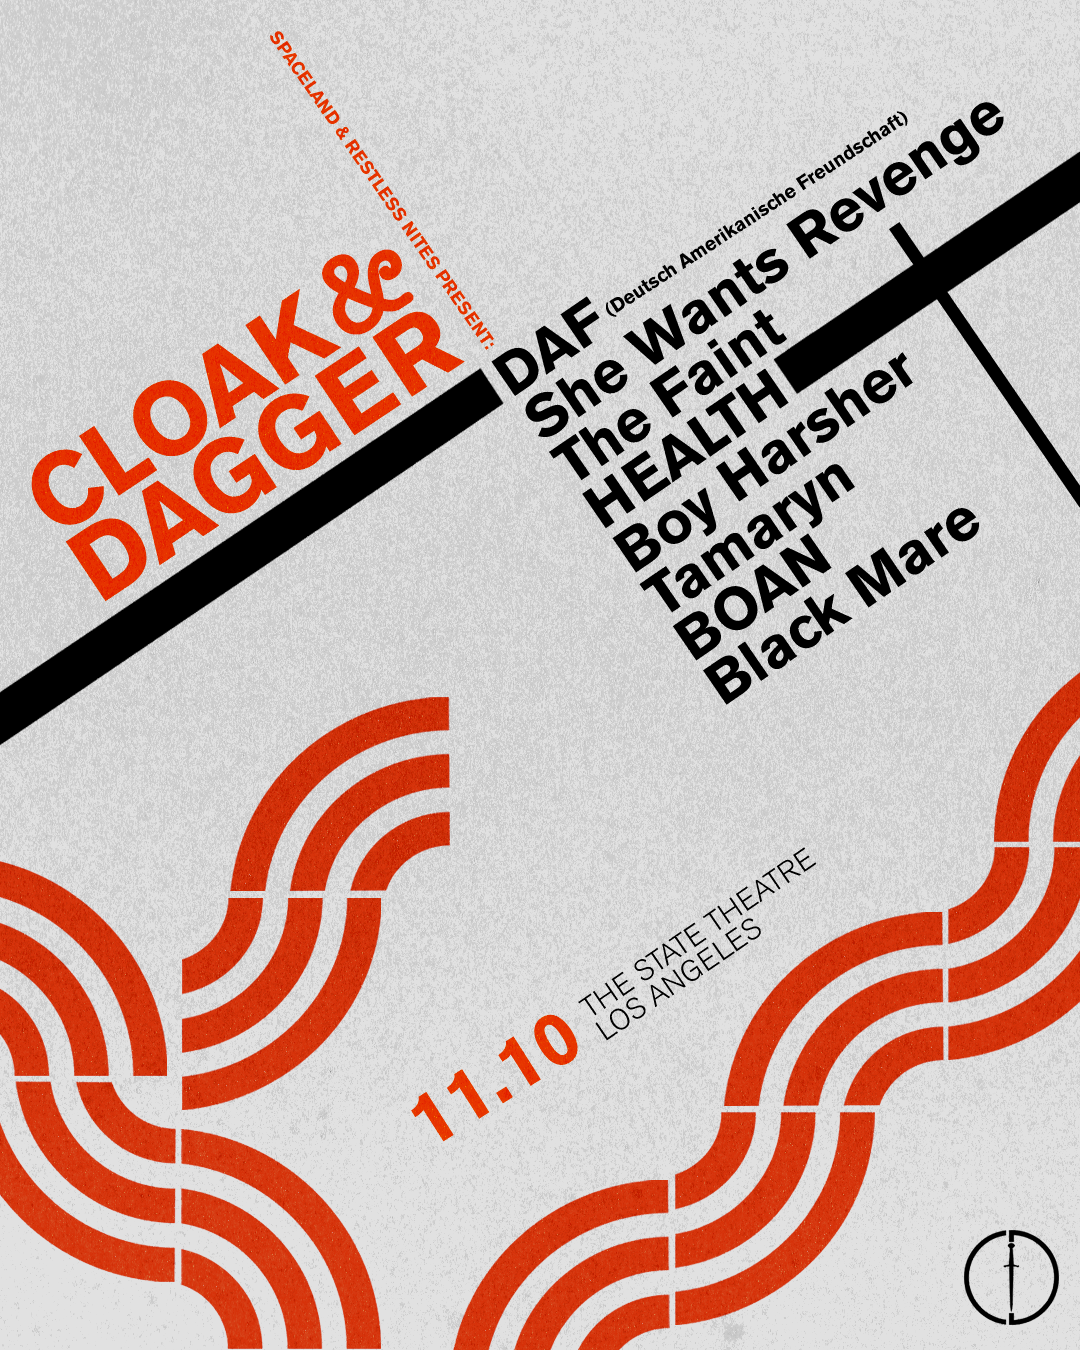 cloak and dagger festival